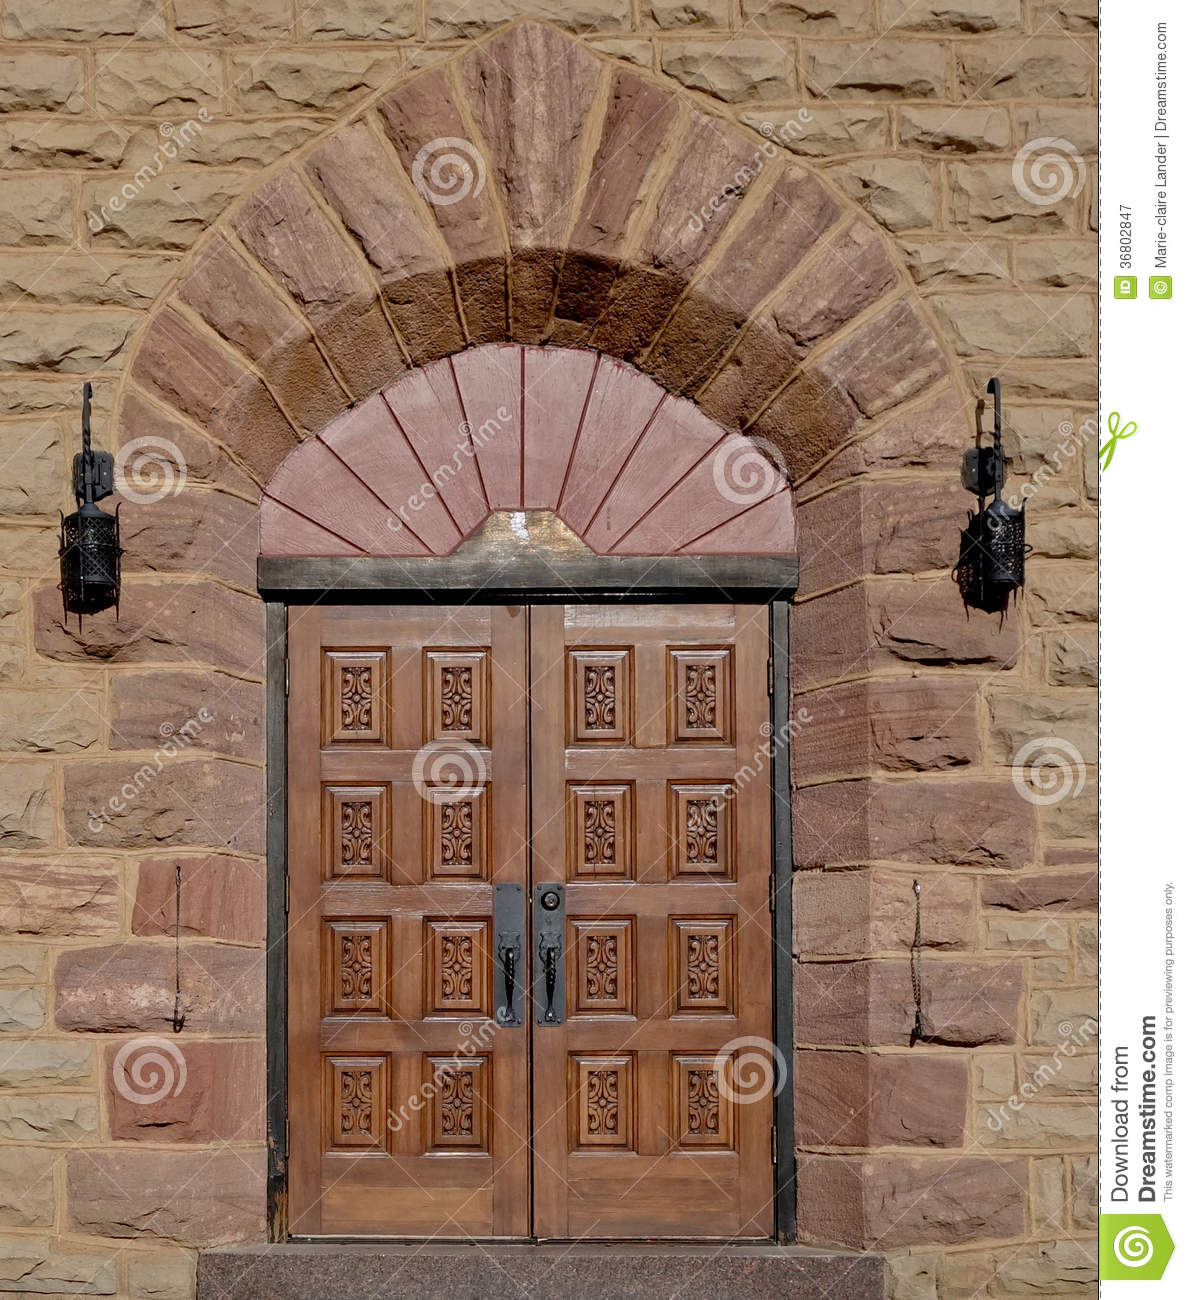 Royalty-Free Stock Photo & Ornate Wooden Church Door With Square Carved Panels. Stock Image ...